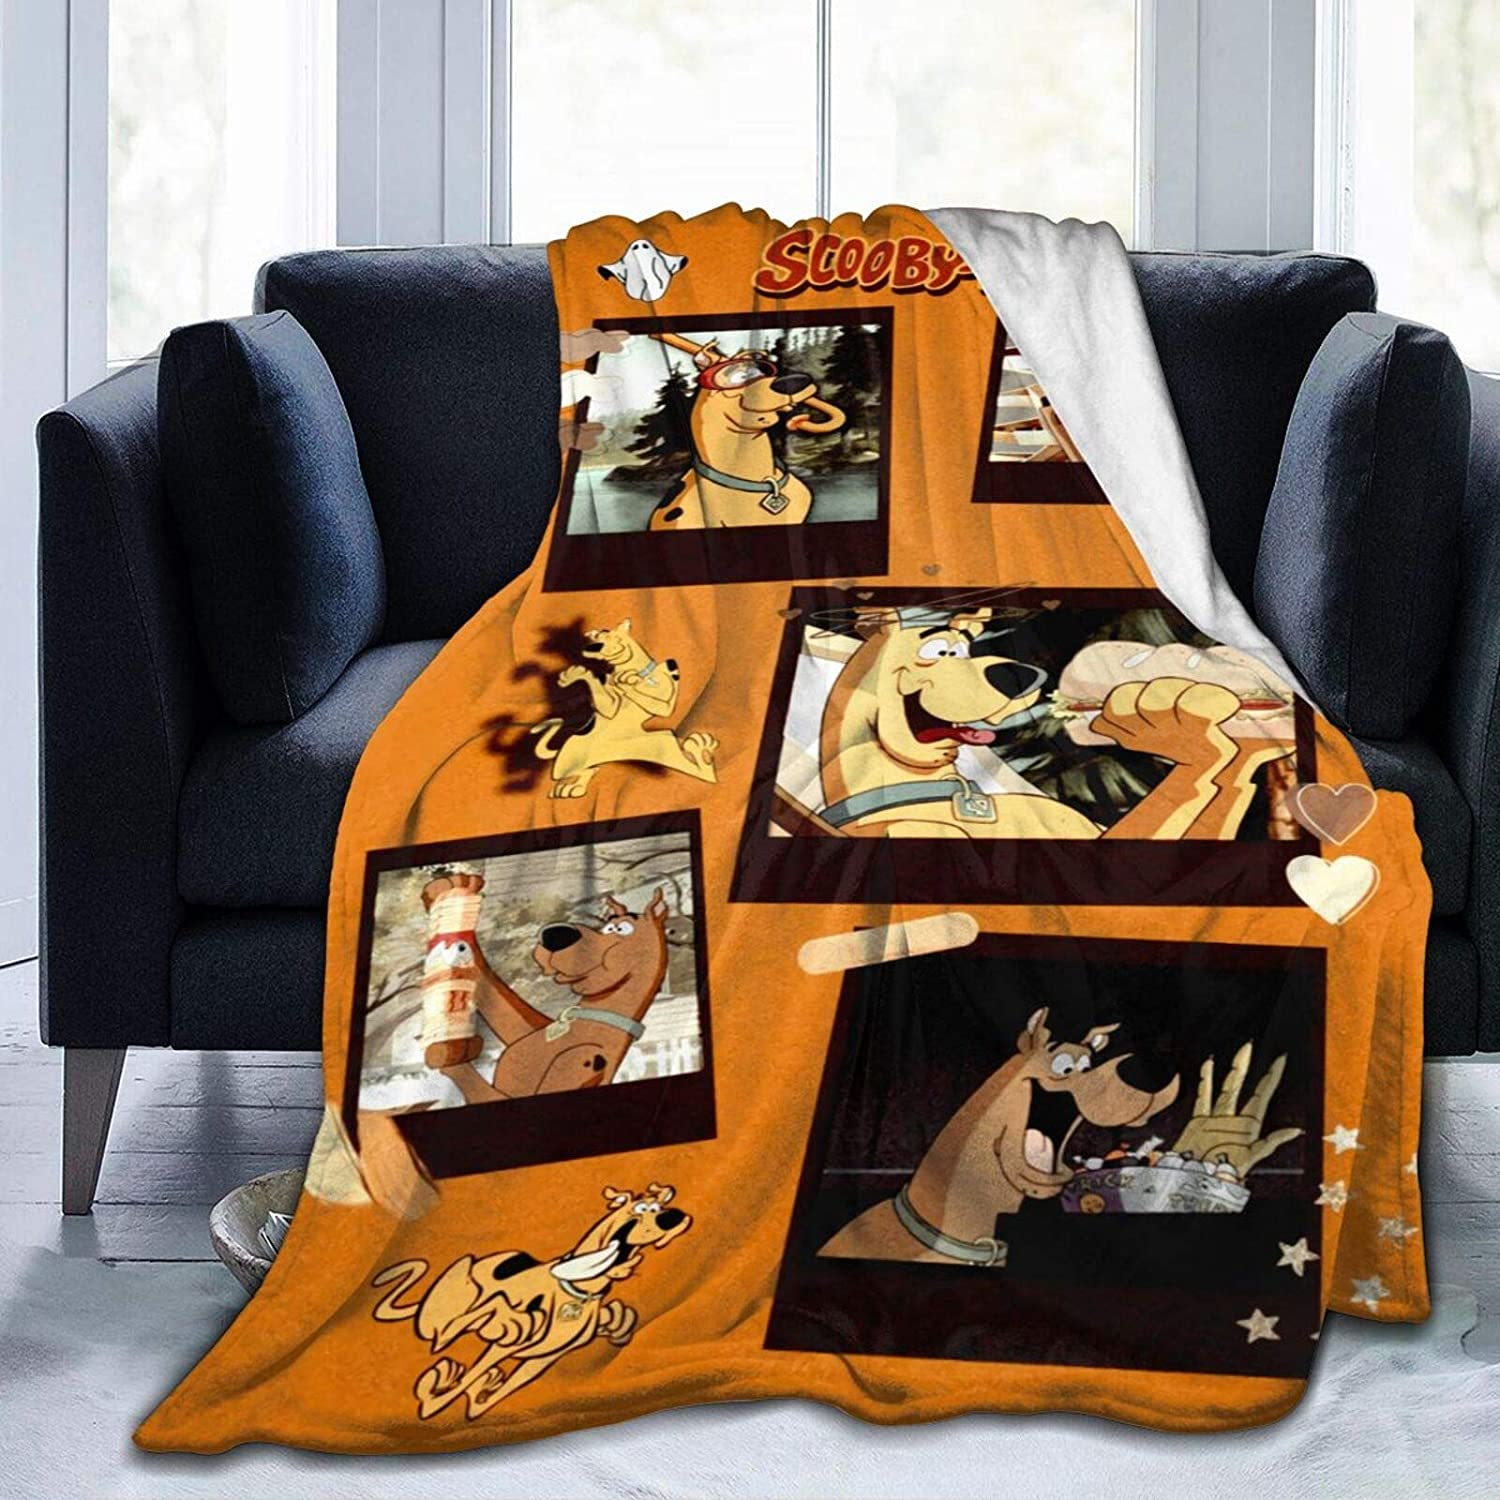 Dserc Scooby-Doo Blanket Ultra メーカー公式 Soft 直営限定アウトレット Warm Throw F Flannel